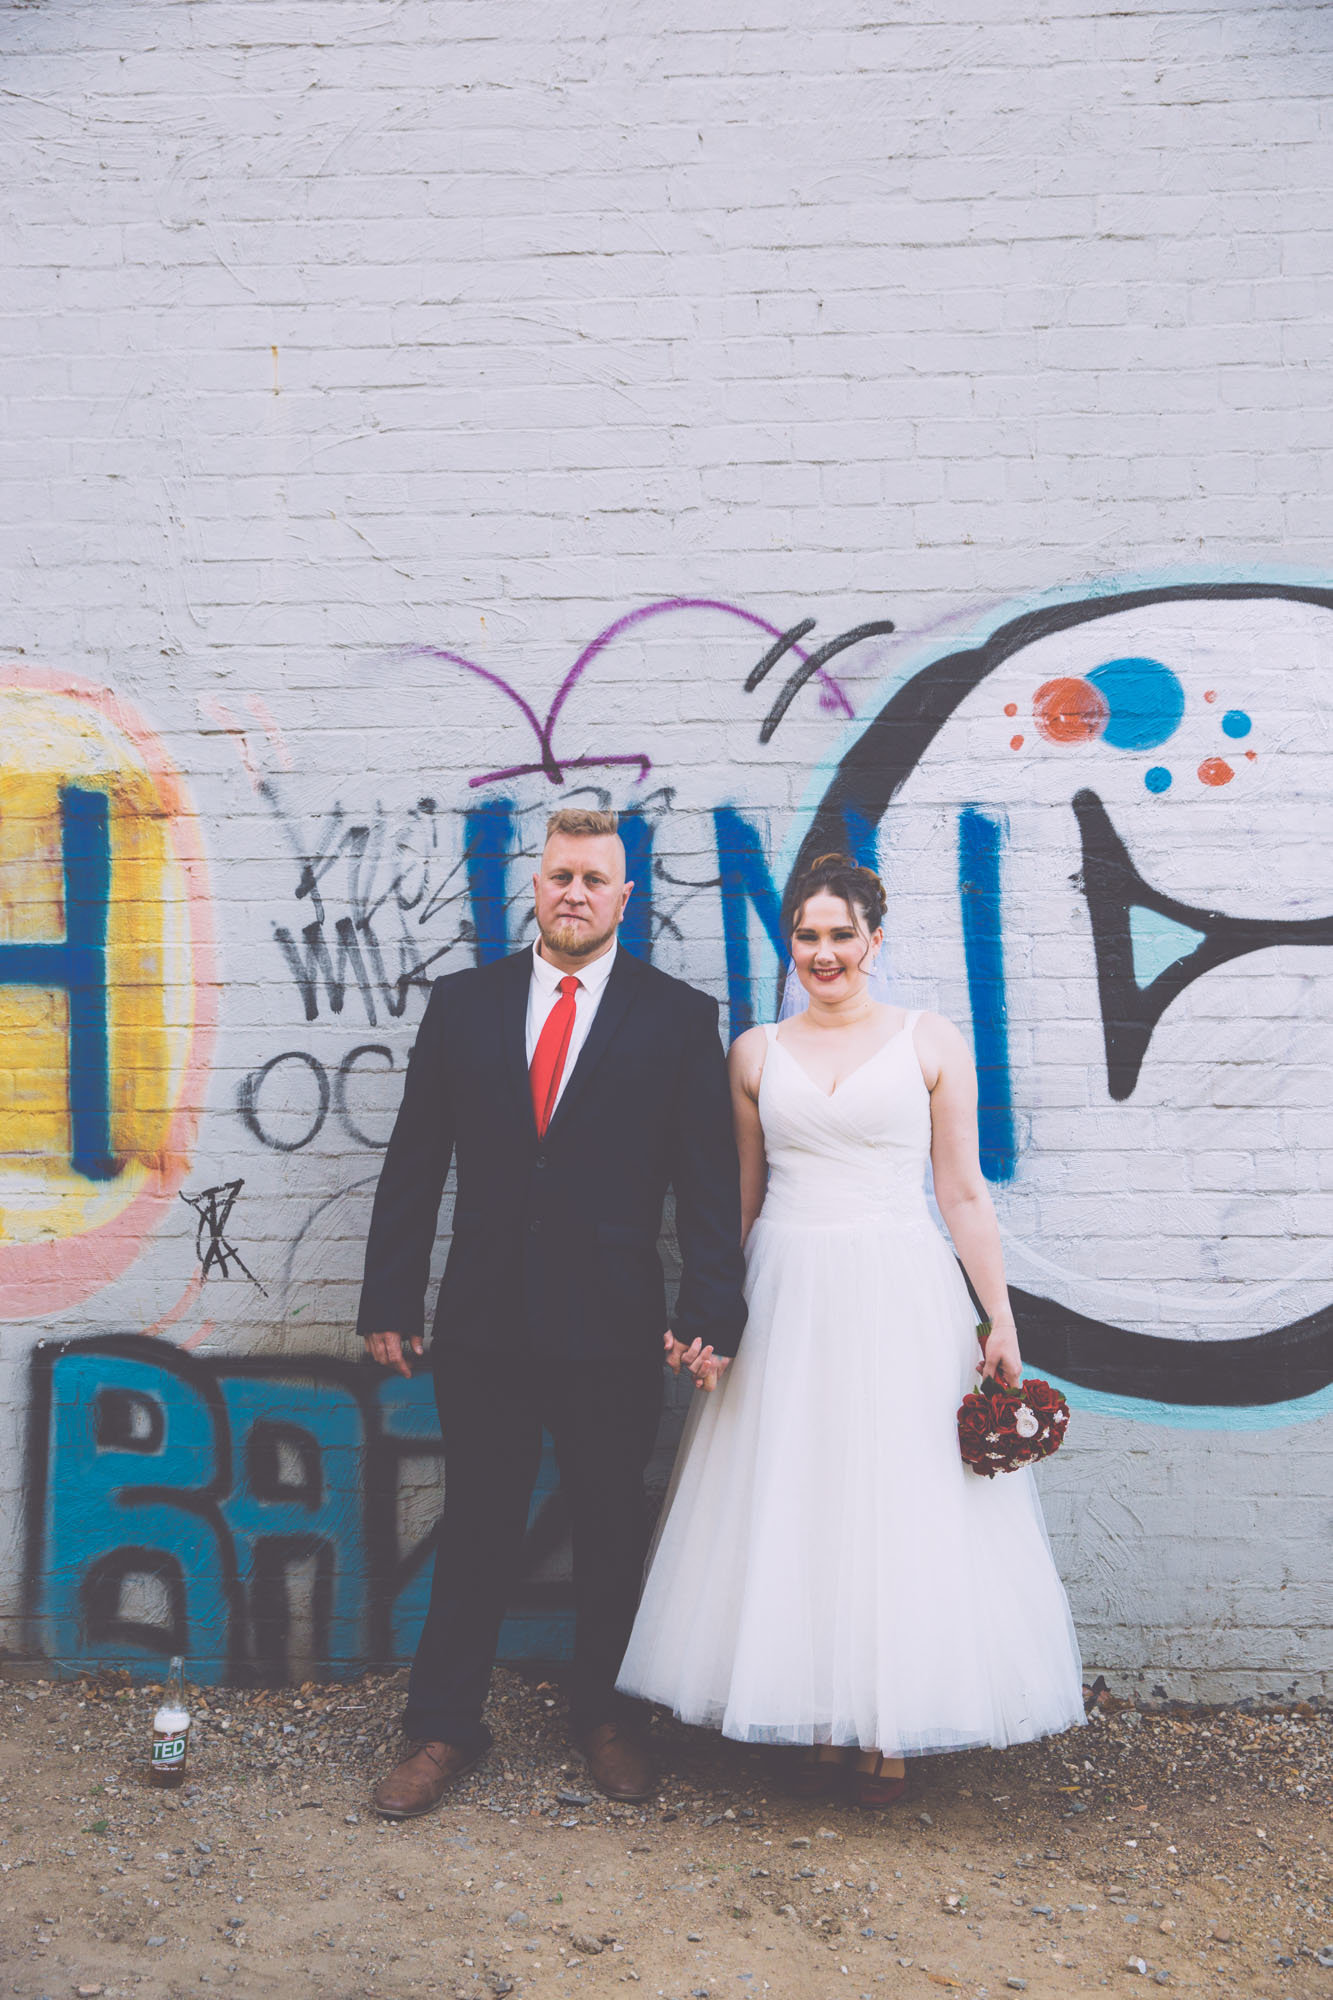 KelliMatt_PrincessTheatreBrisbaneWedding_AnnaOsetroffPhotographer_Website-81